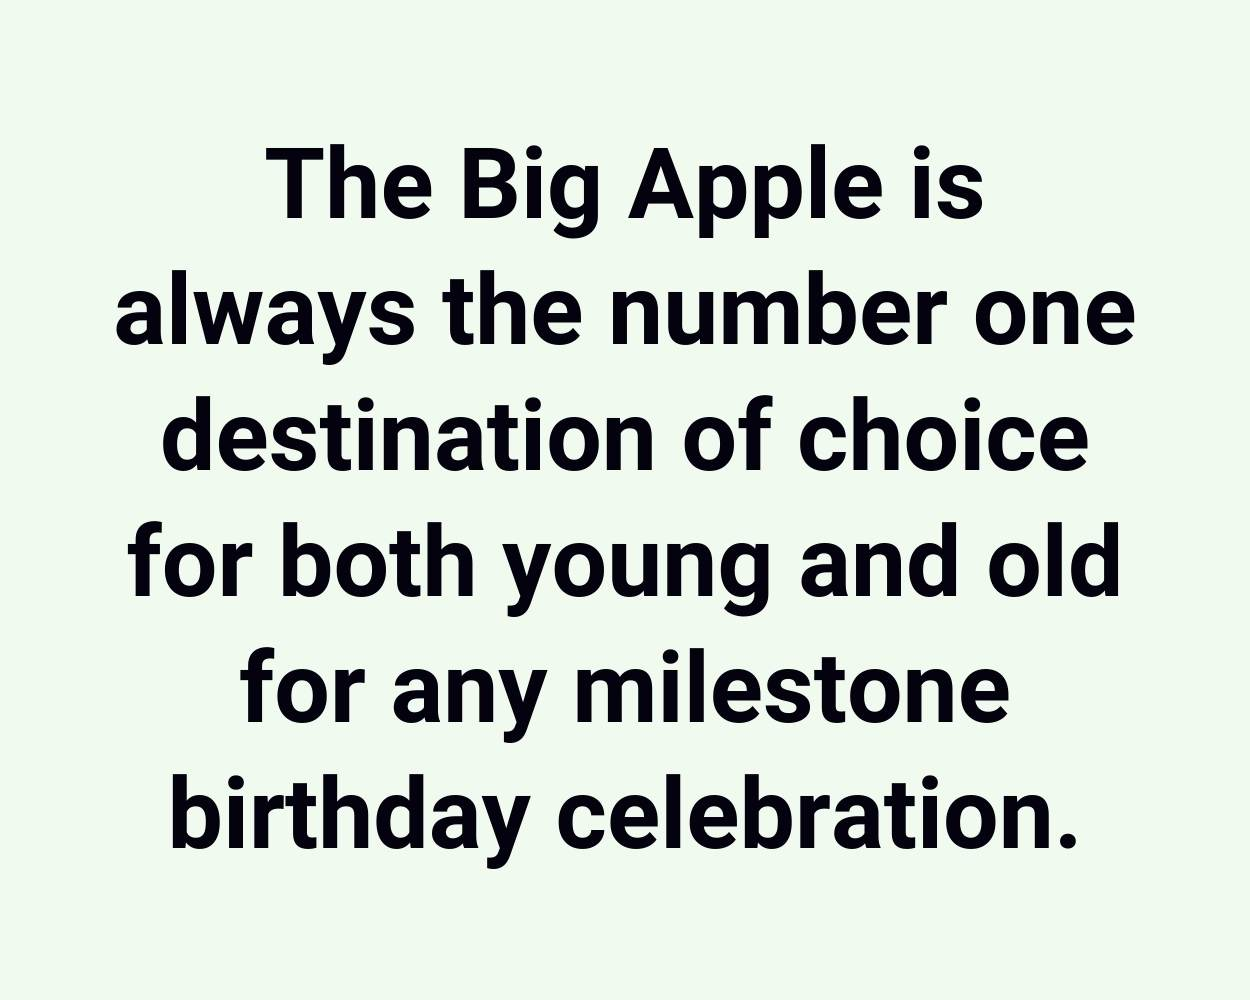 The Big Apple is always the number one destination of choice for both young and old for any milestone birthday celebration. (1)